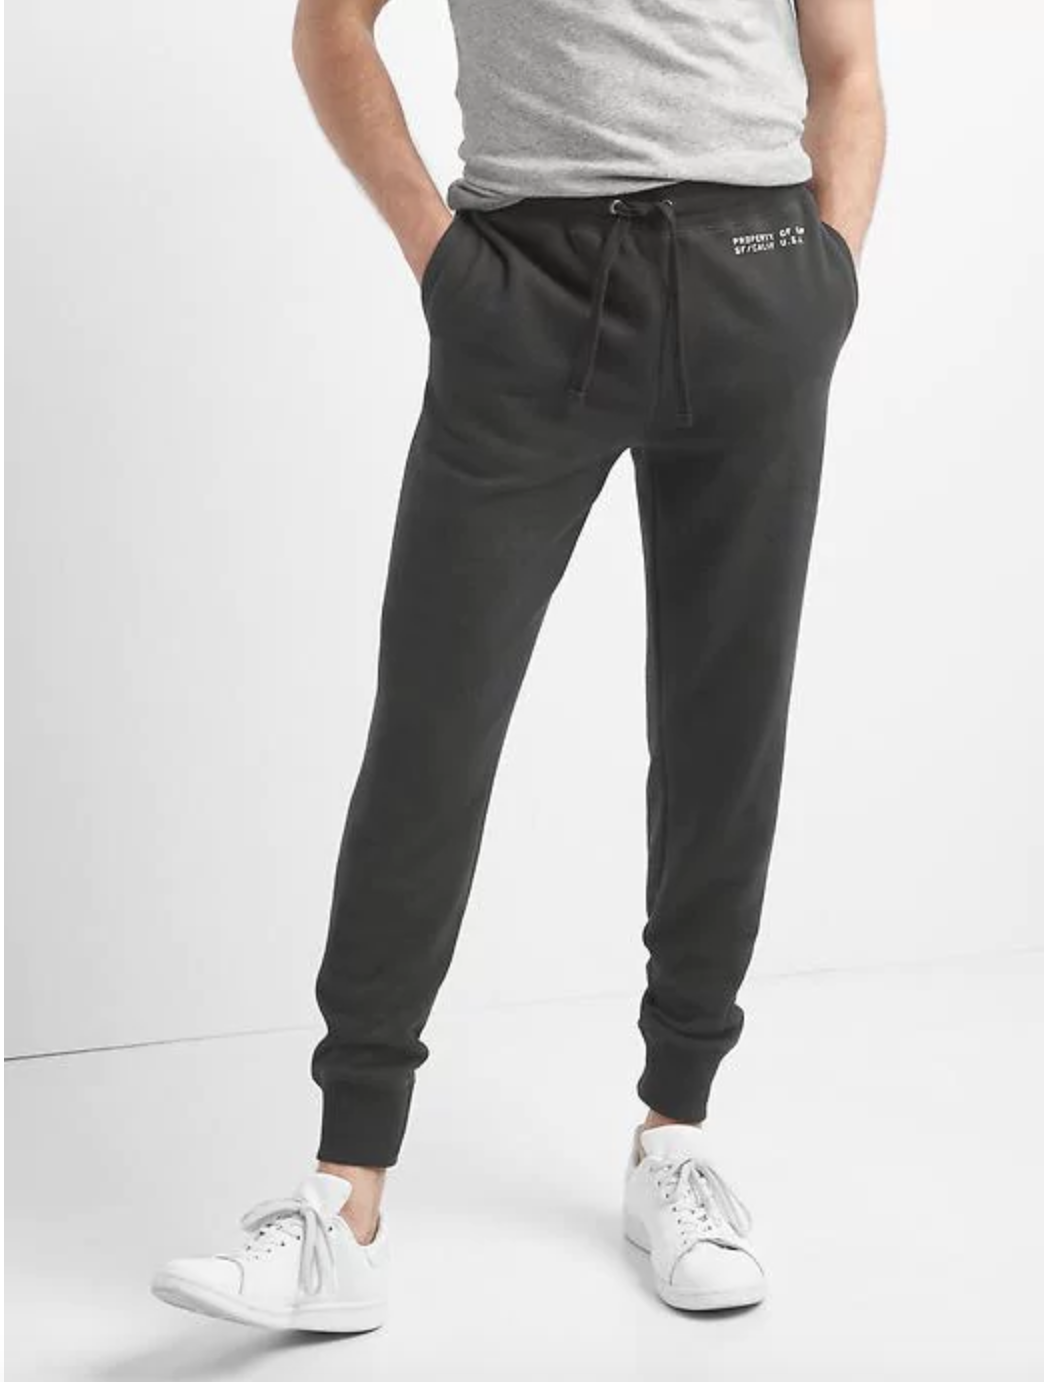 French Terry Joggers - $50